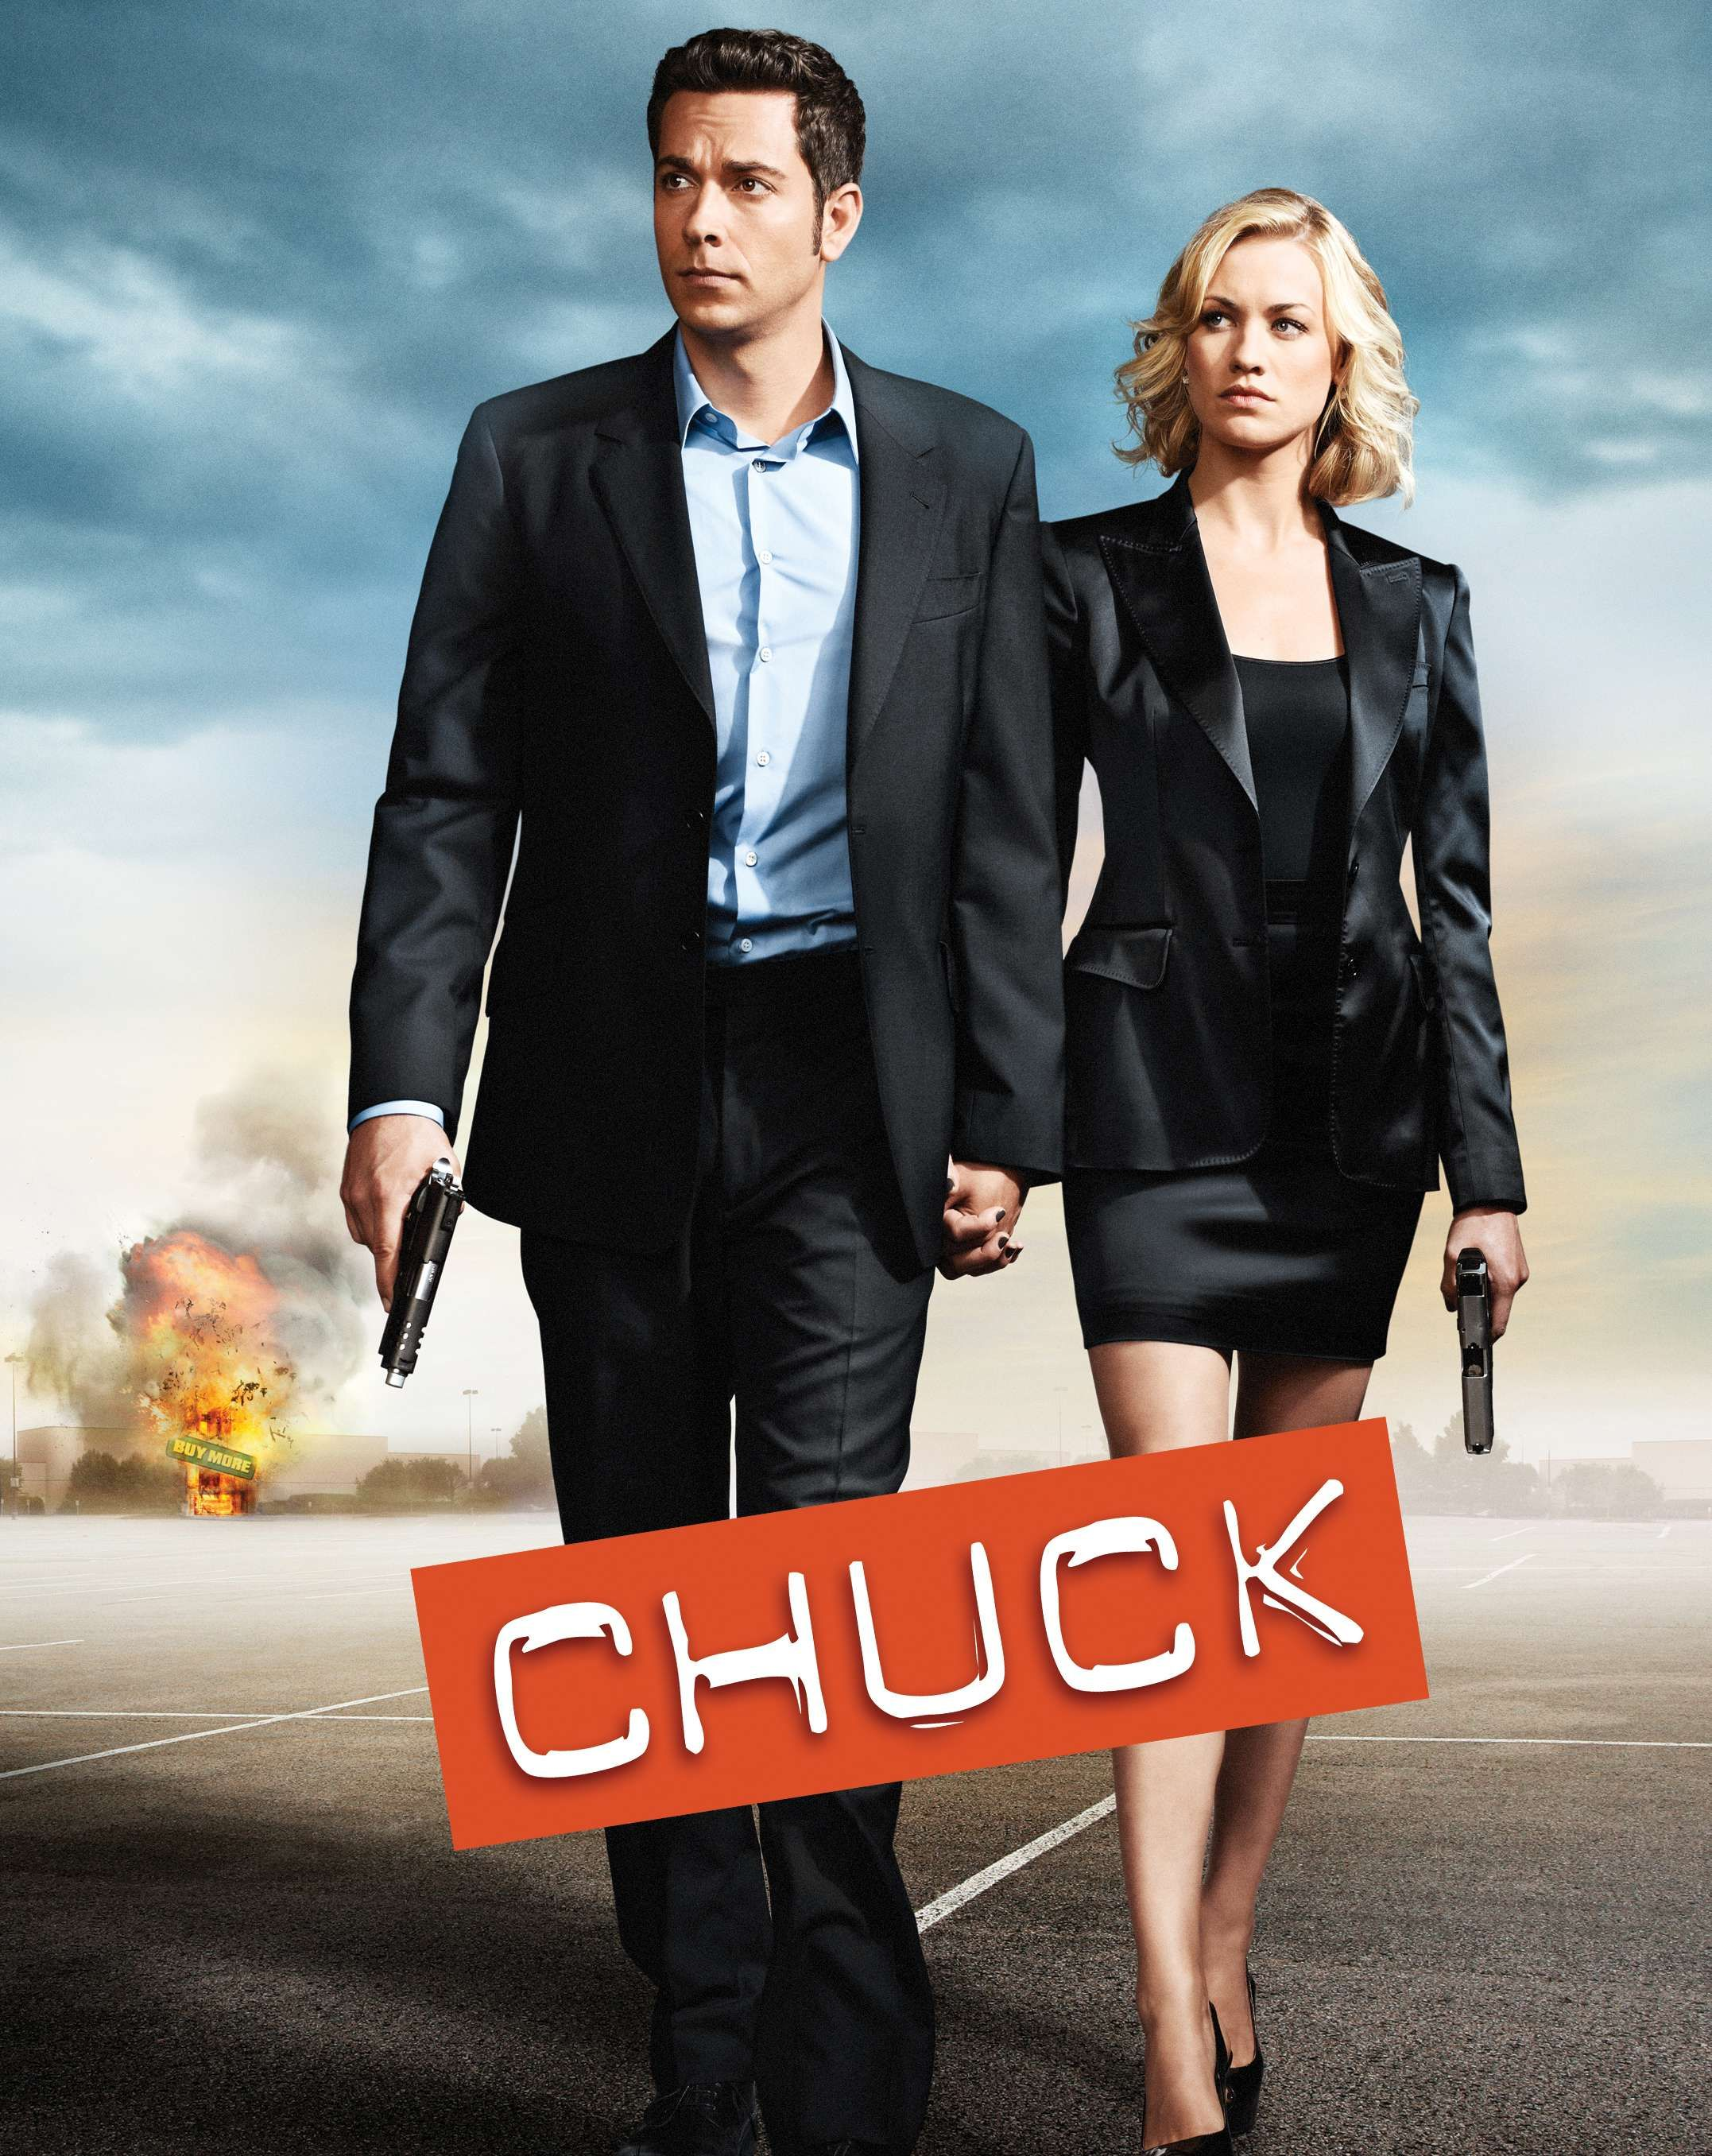 Chuck-brilliant show. I dont't know why I waited so long to watch this show. LOVE IT.